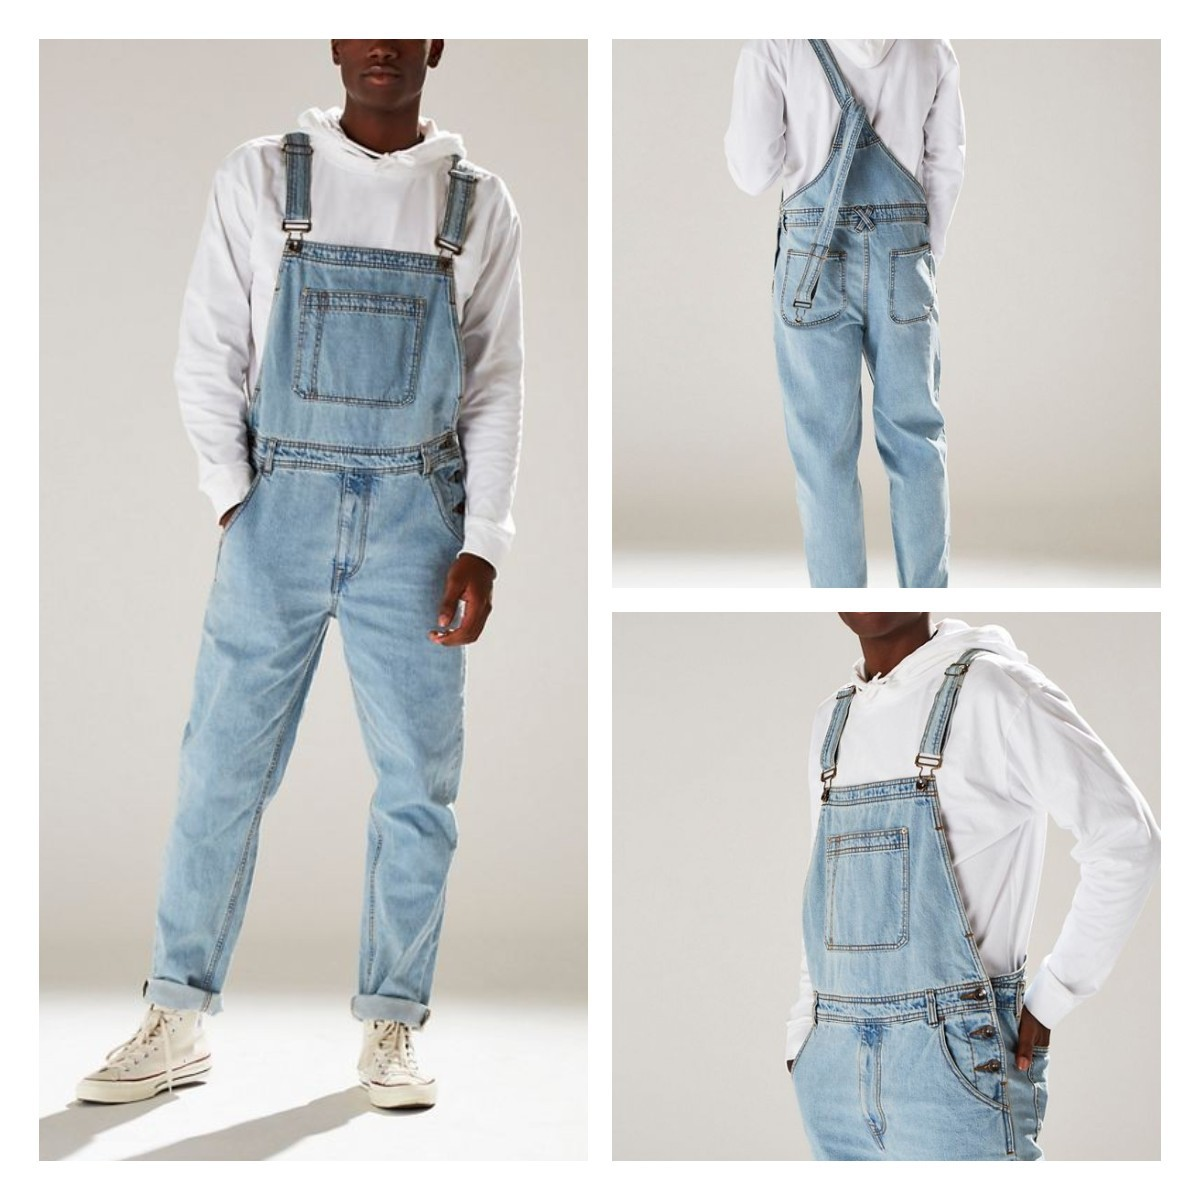 New Style 2019 Summer Street Cool Europe And America Suspender Pants High-waisted MEN'S Jeans